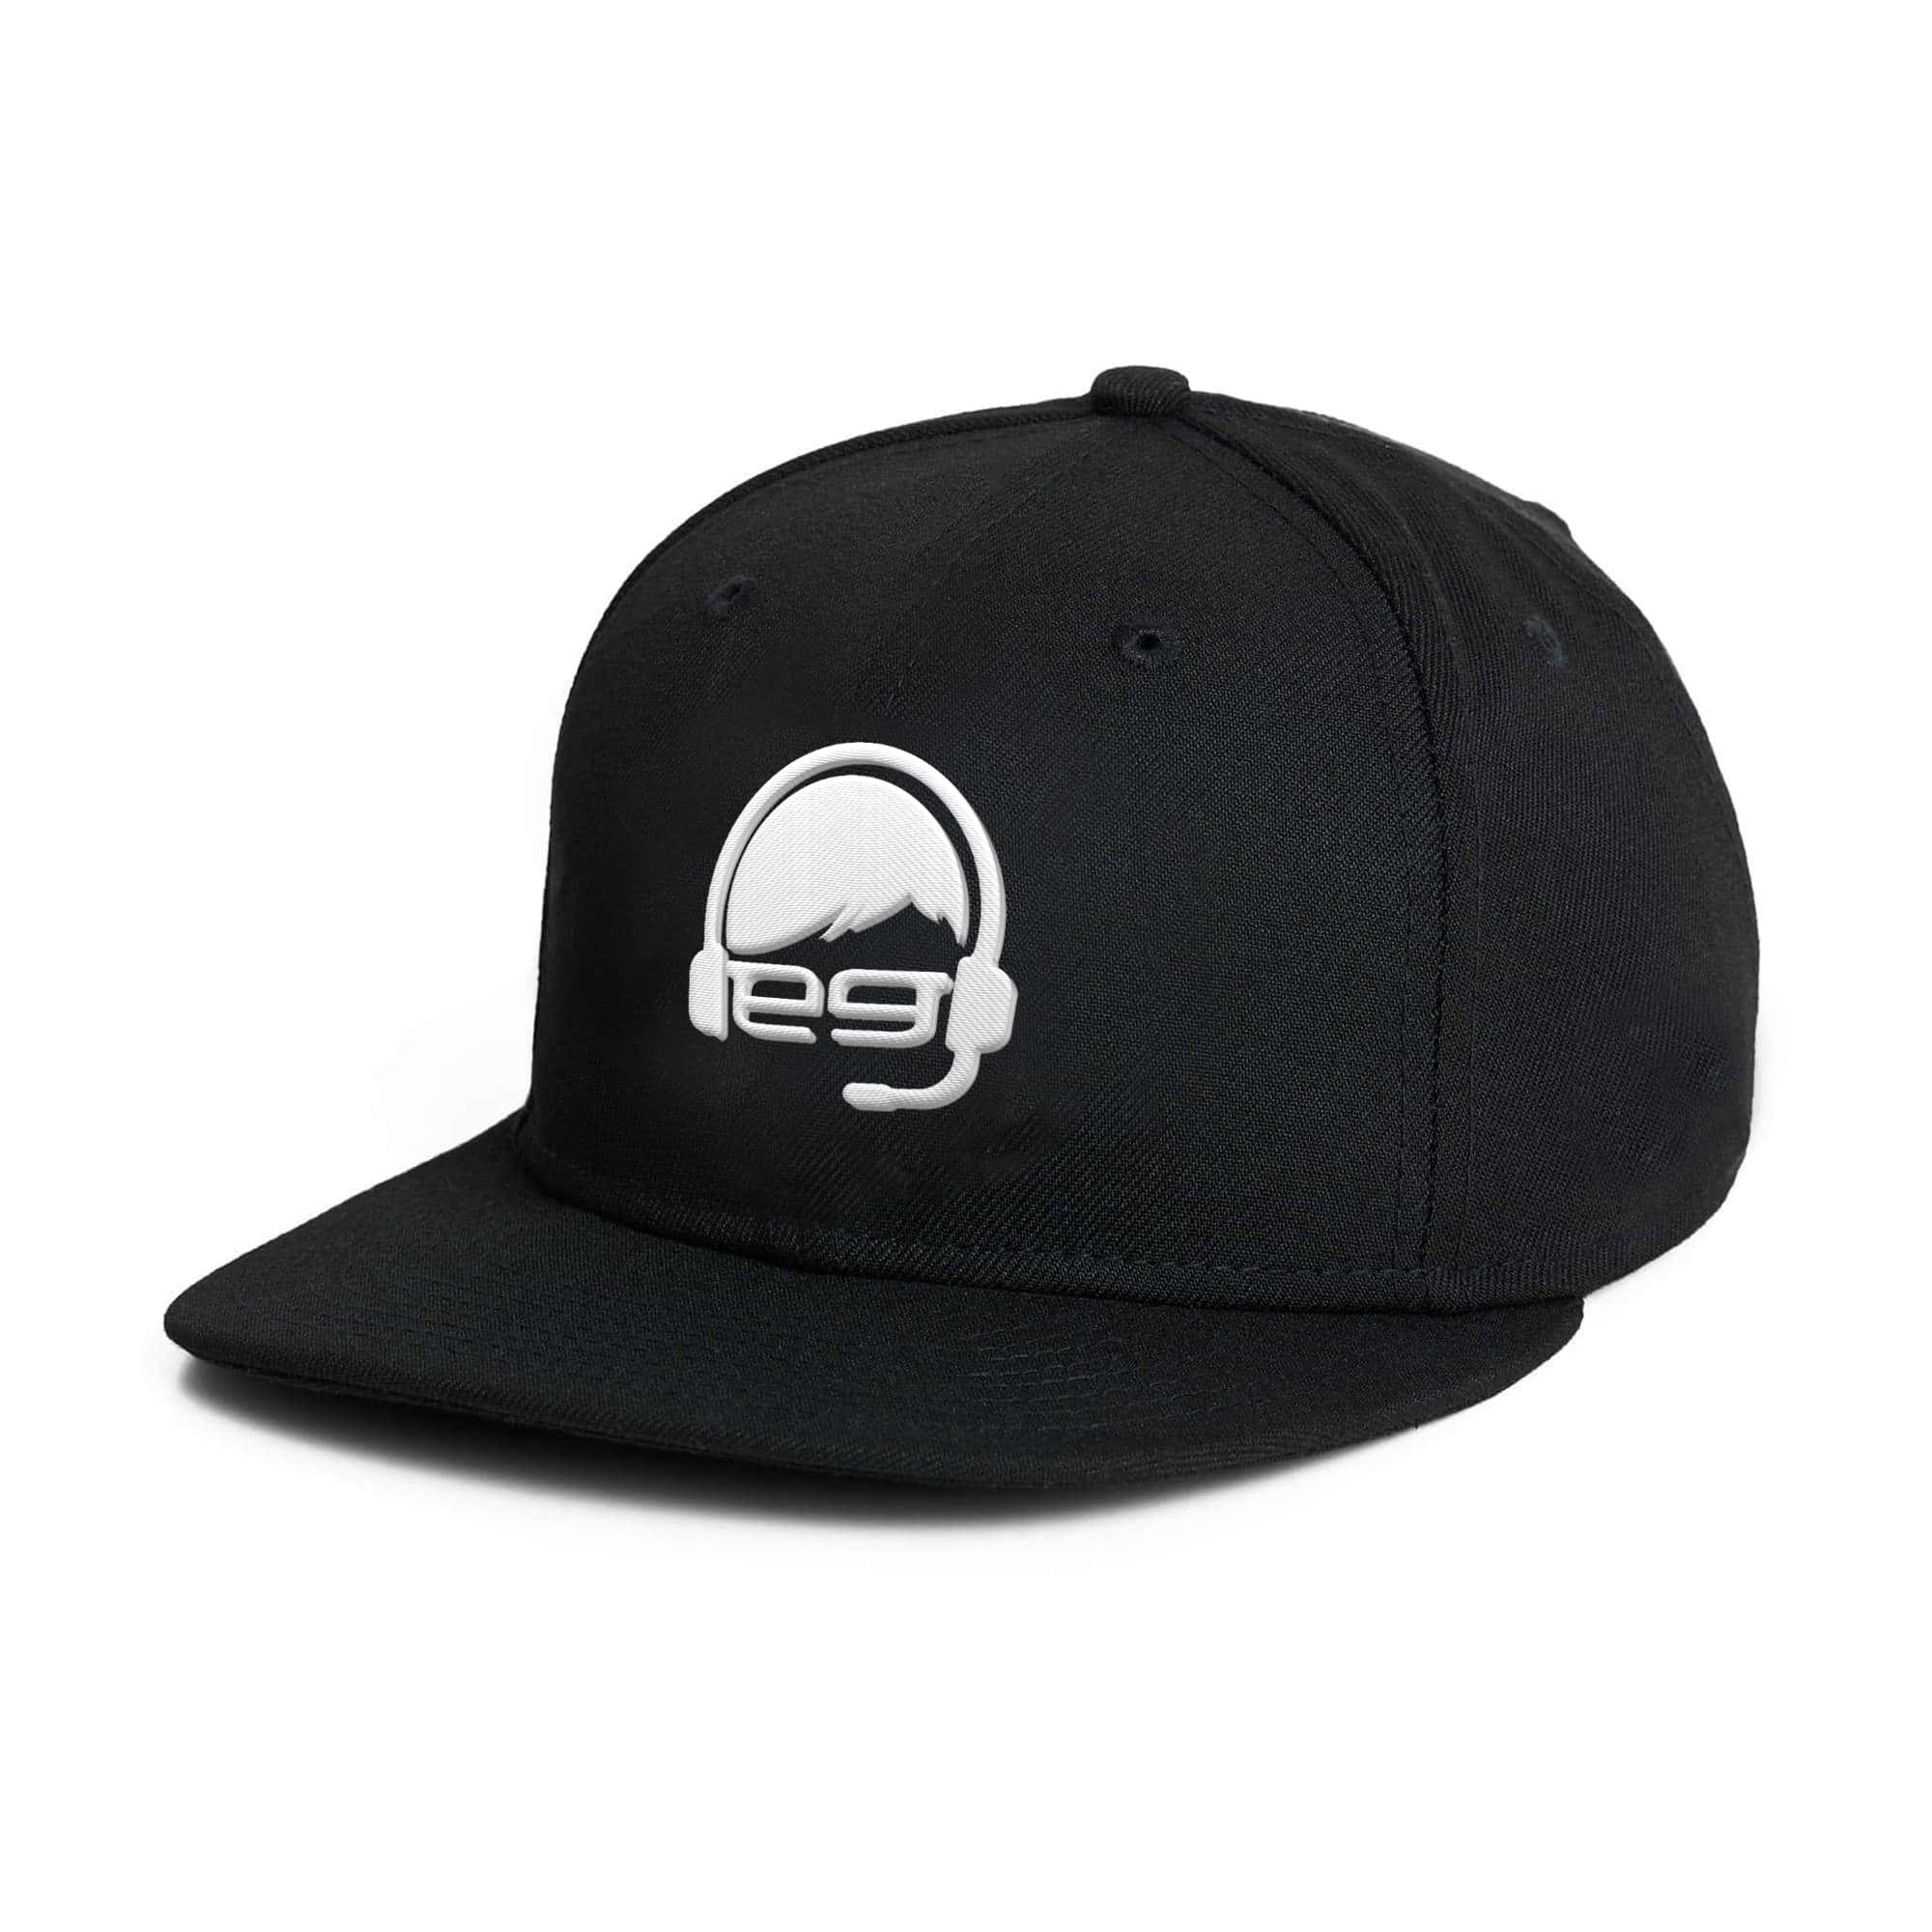 Ethan Gamer 'Logo' Youth Snapback